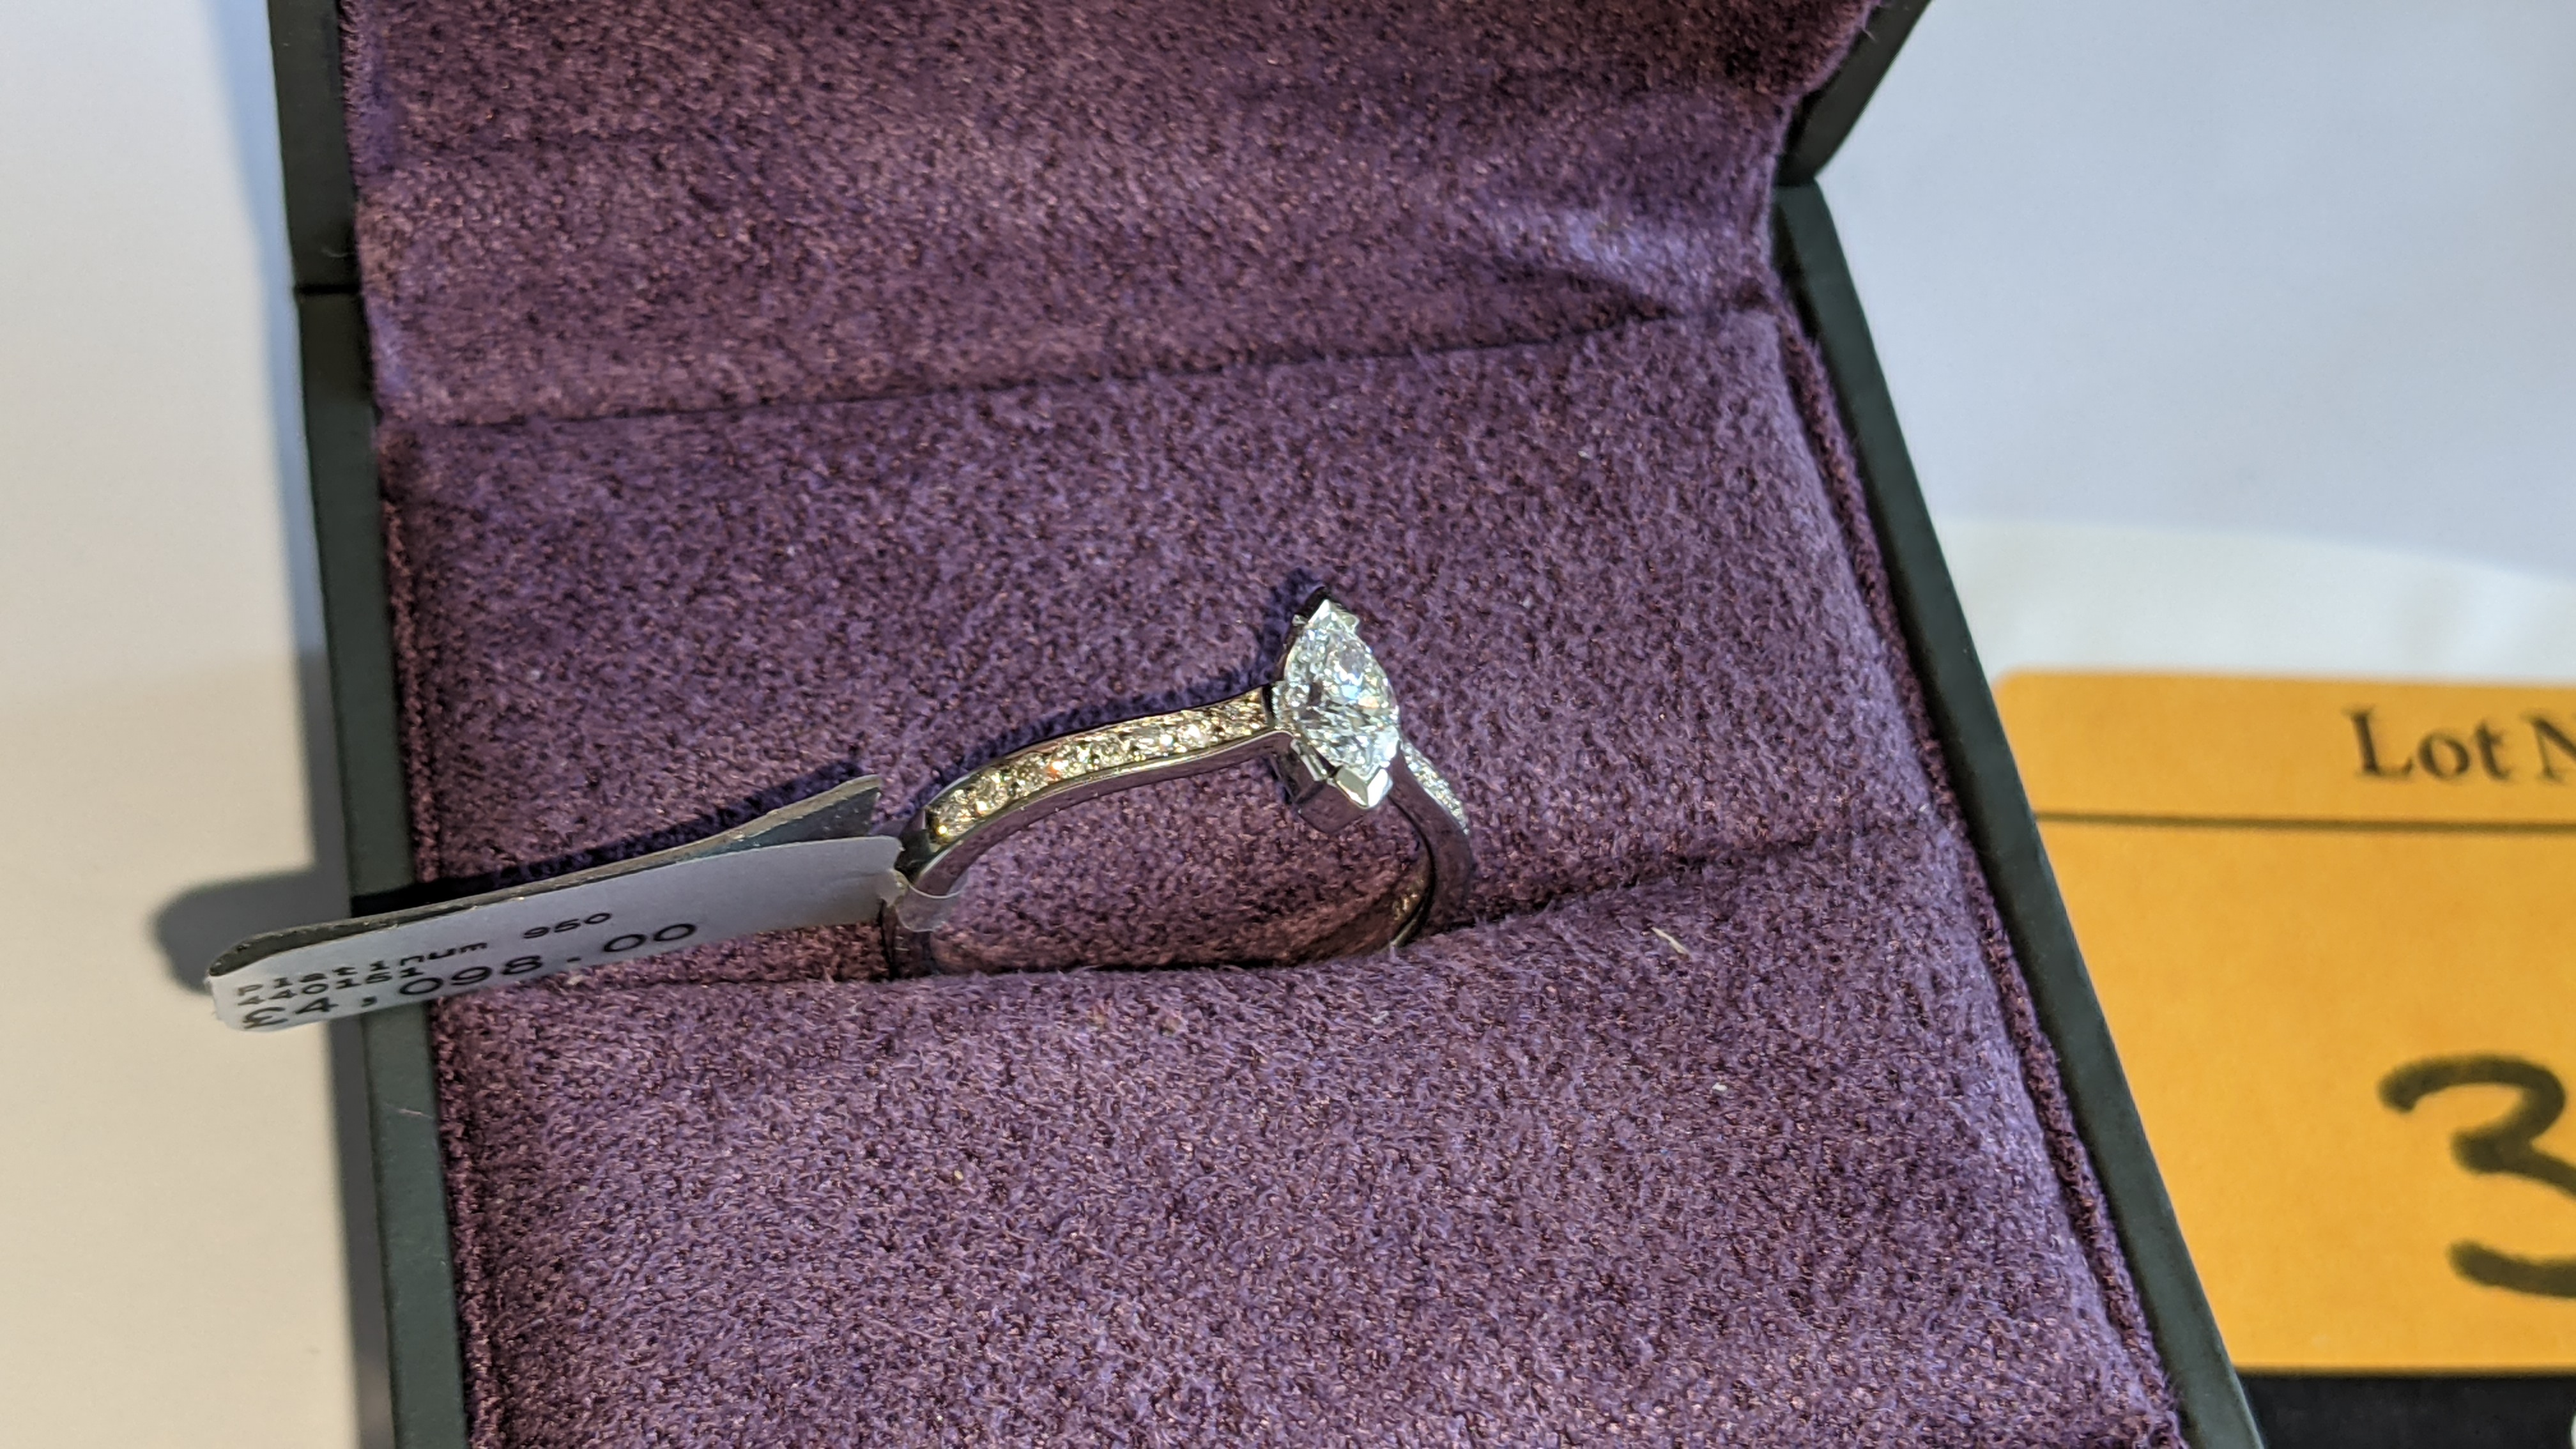 Platinum 950 ring with marquise shaped central diamond plus diamonds on the shoulders either side, t - Image 5 of 16